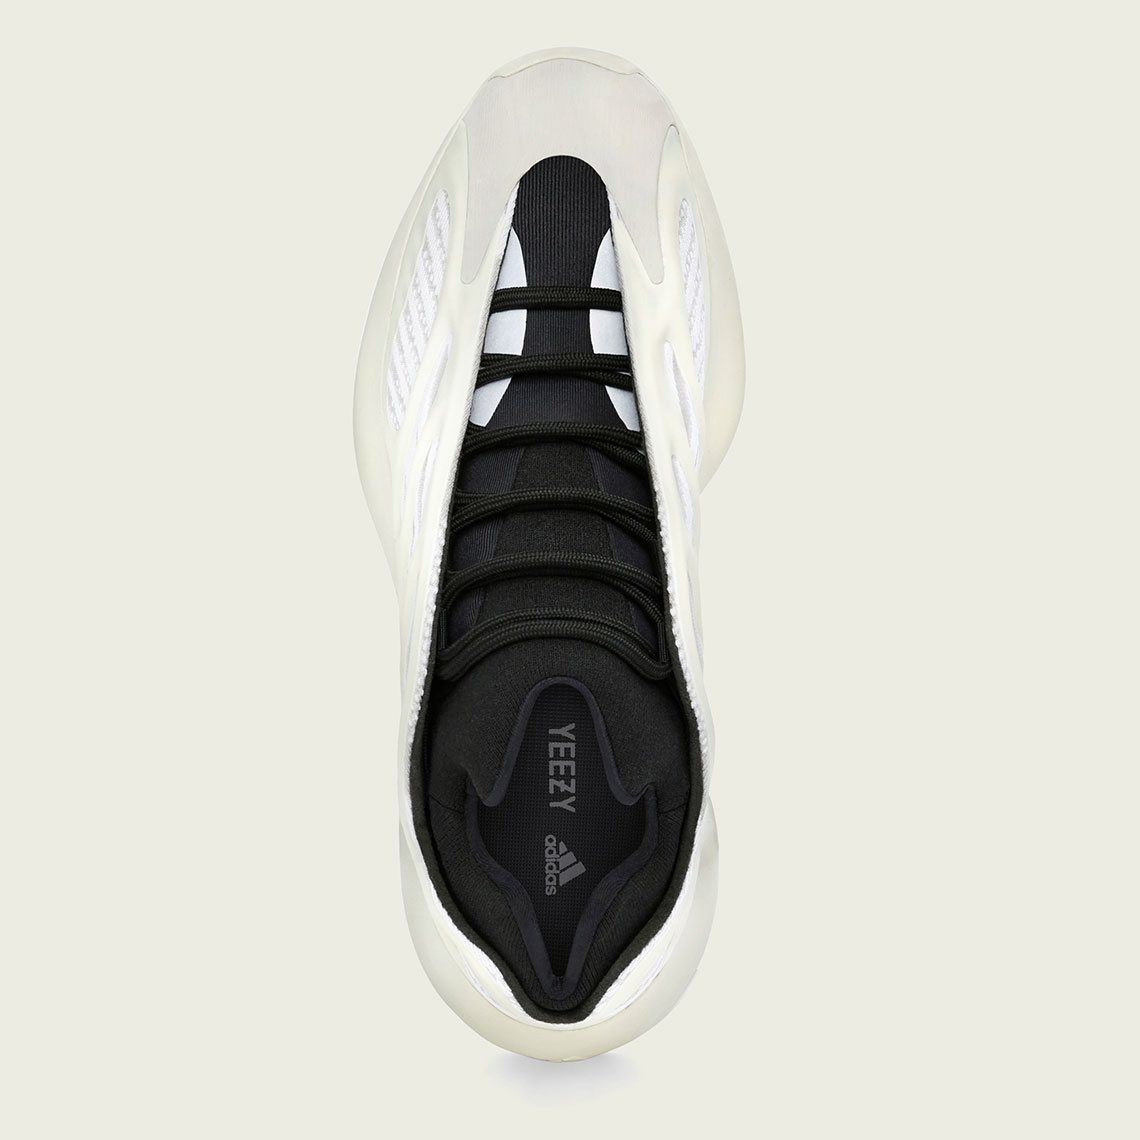 adidas-yeezy-700-v3-release-date-4